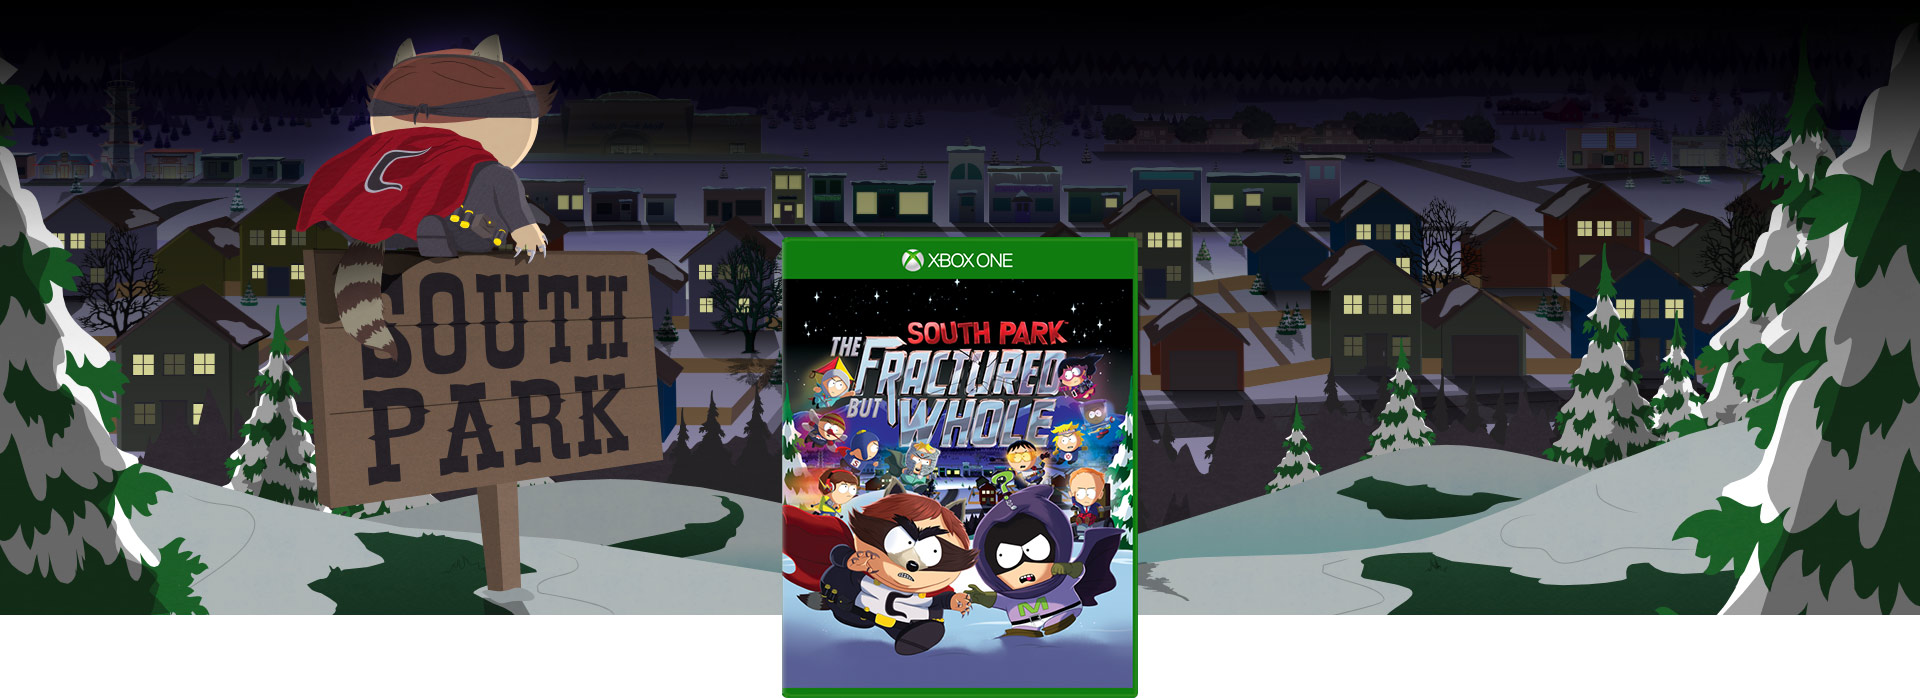 South Park Fractured But Whole – coverbillede